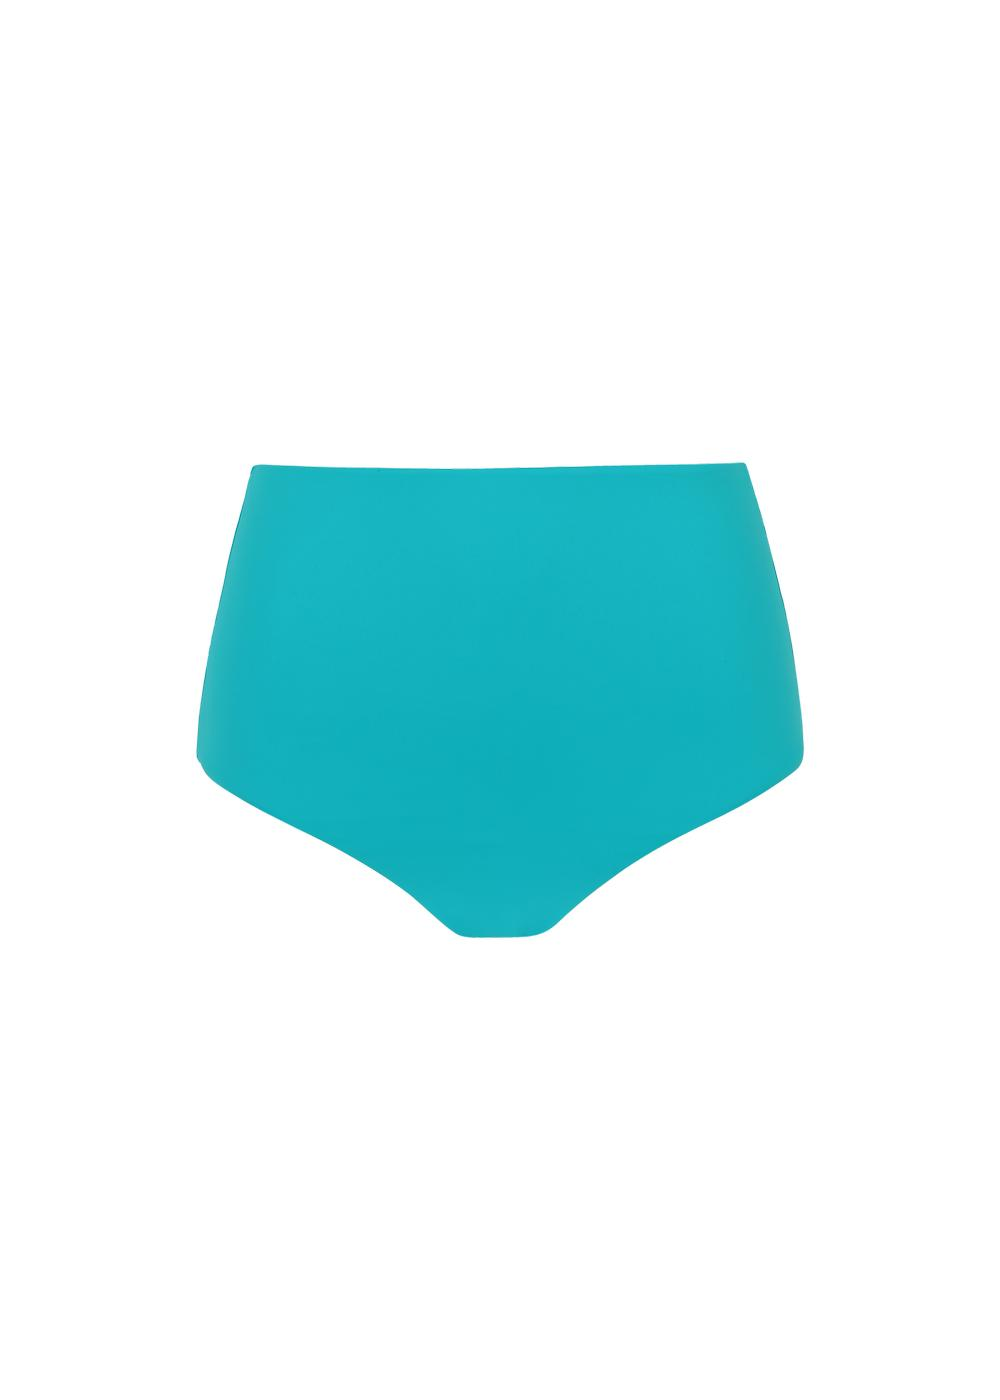 Indonesia High Waist Shaping Bikini Bottoms